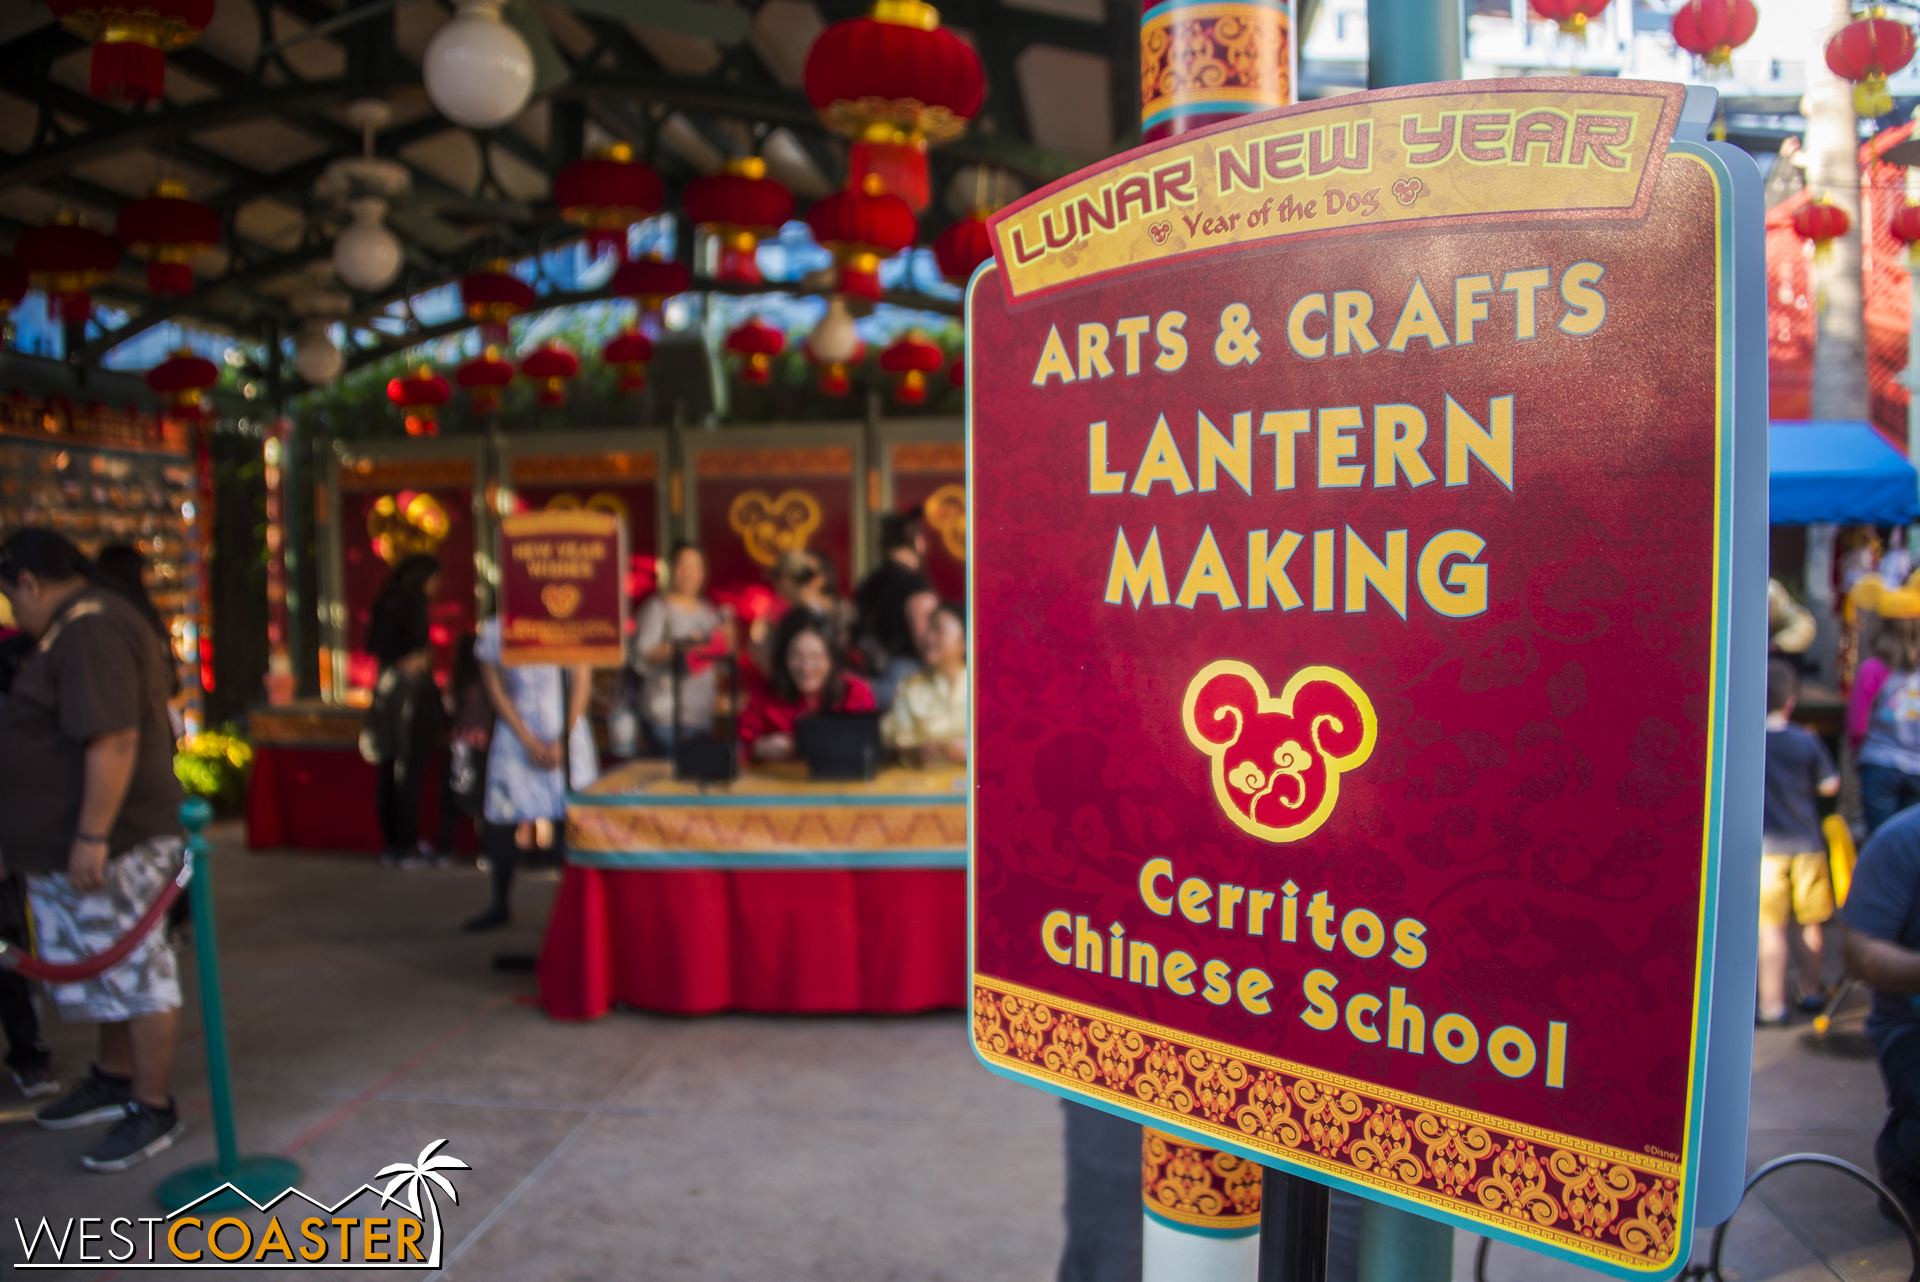 Cerritos Chinese School offers some Chinese arts and crafts. Kind of cool to see the place where I went to Chinese school for a few years as a kid make a feature here.